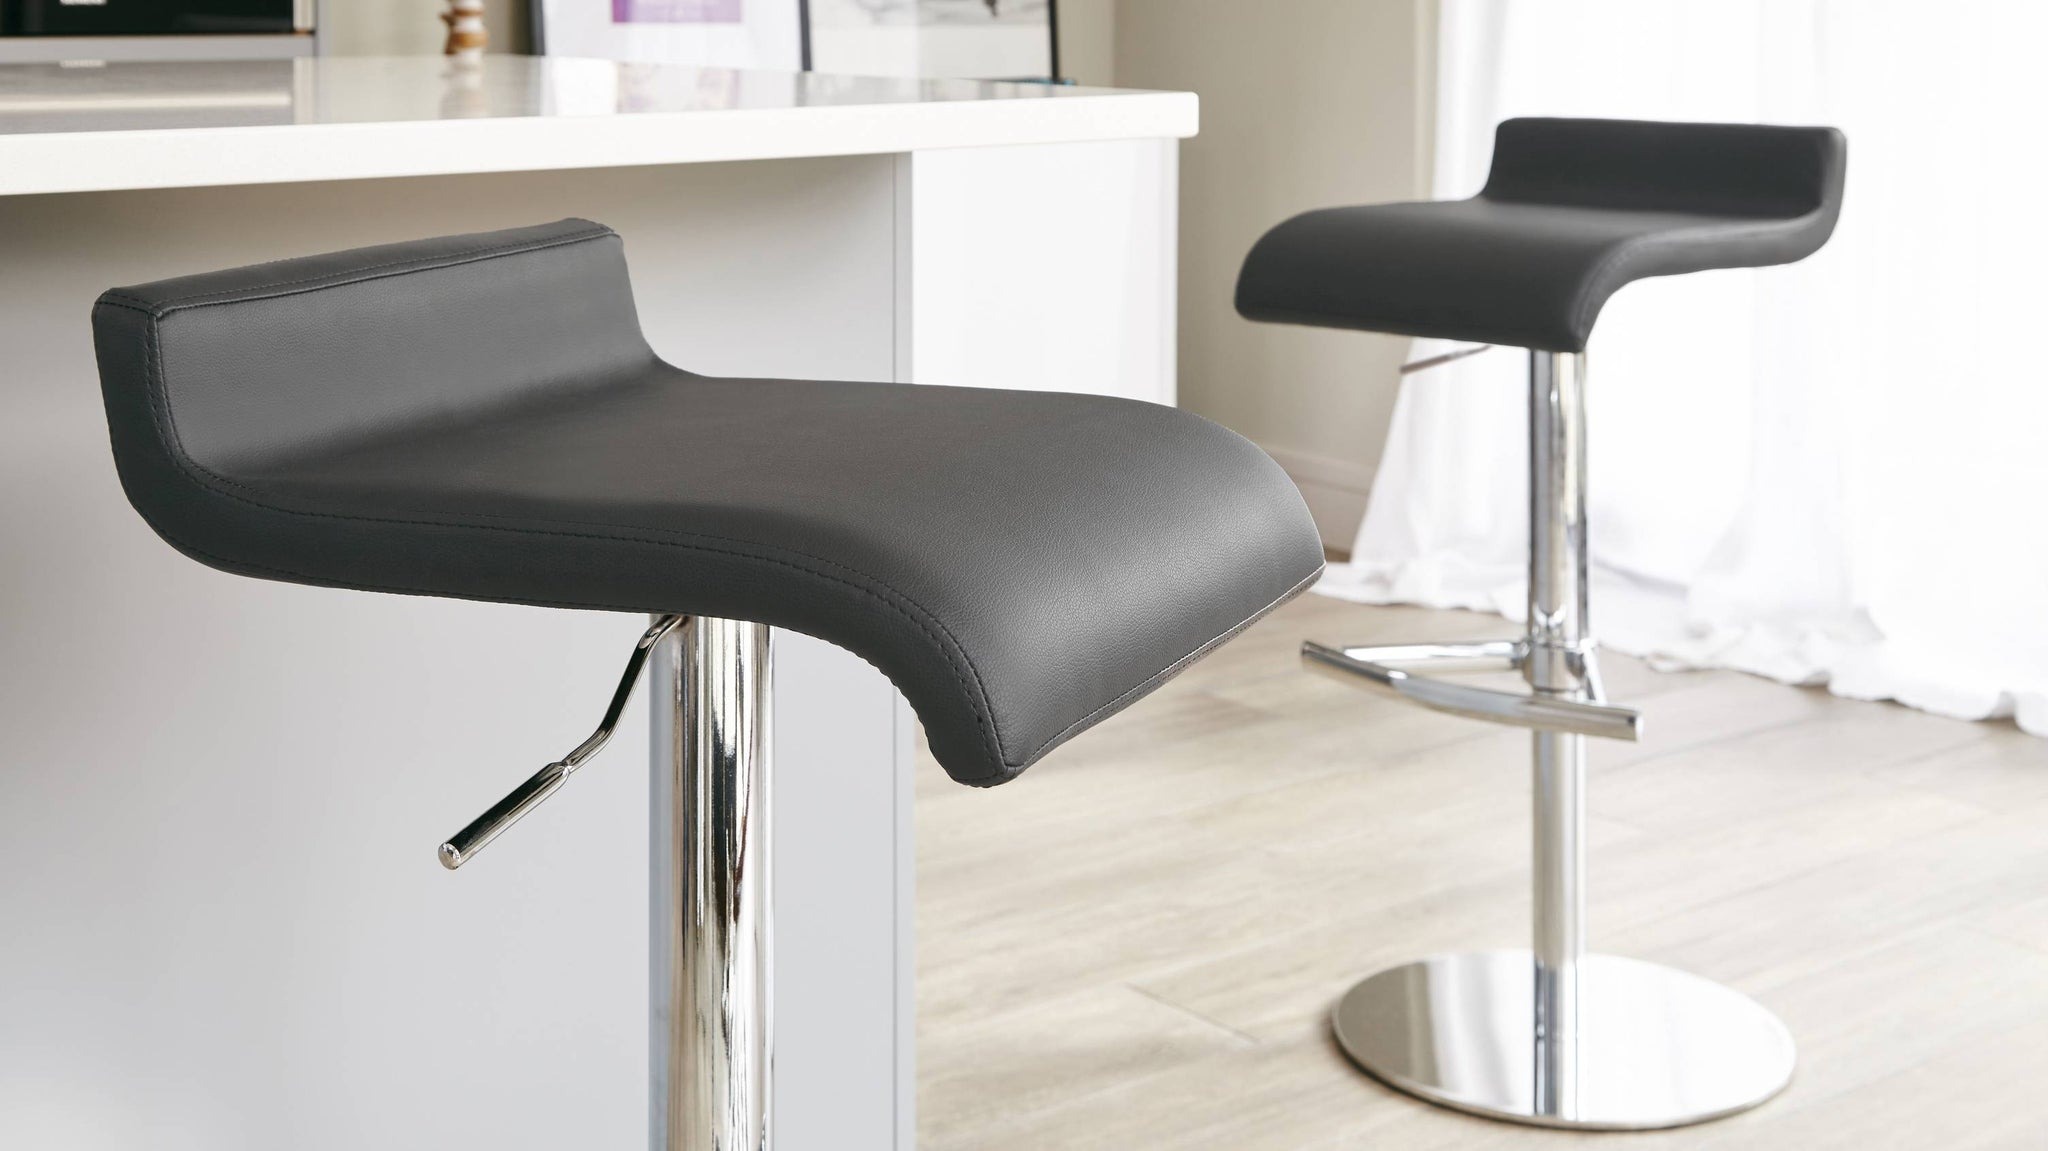 Stylish Chrome Gas Lift Bar Stool pedestal with Foot Rest